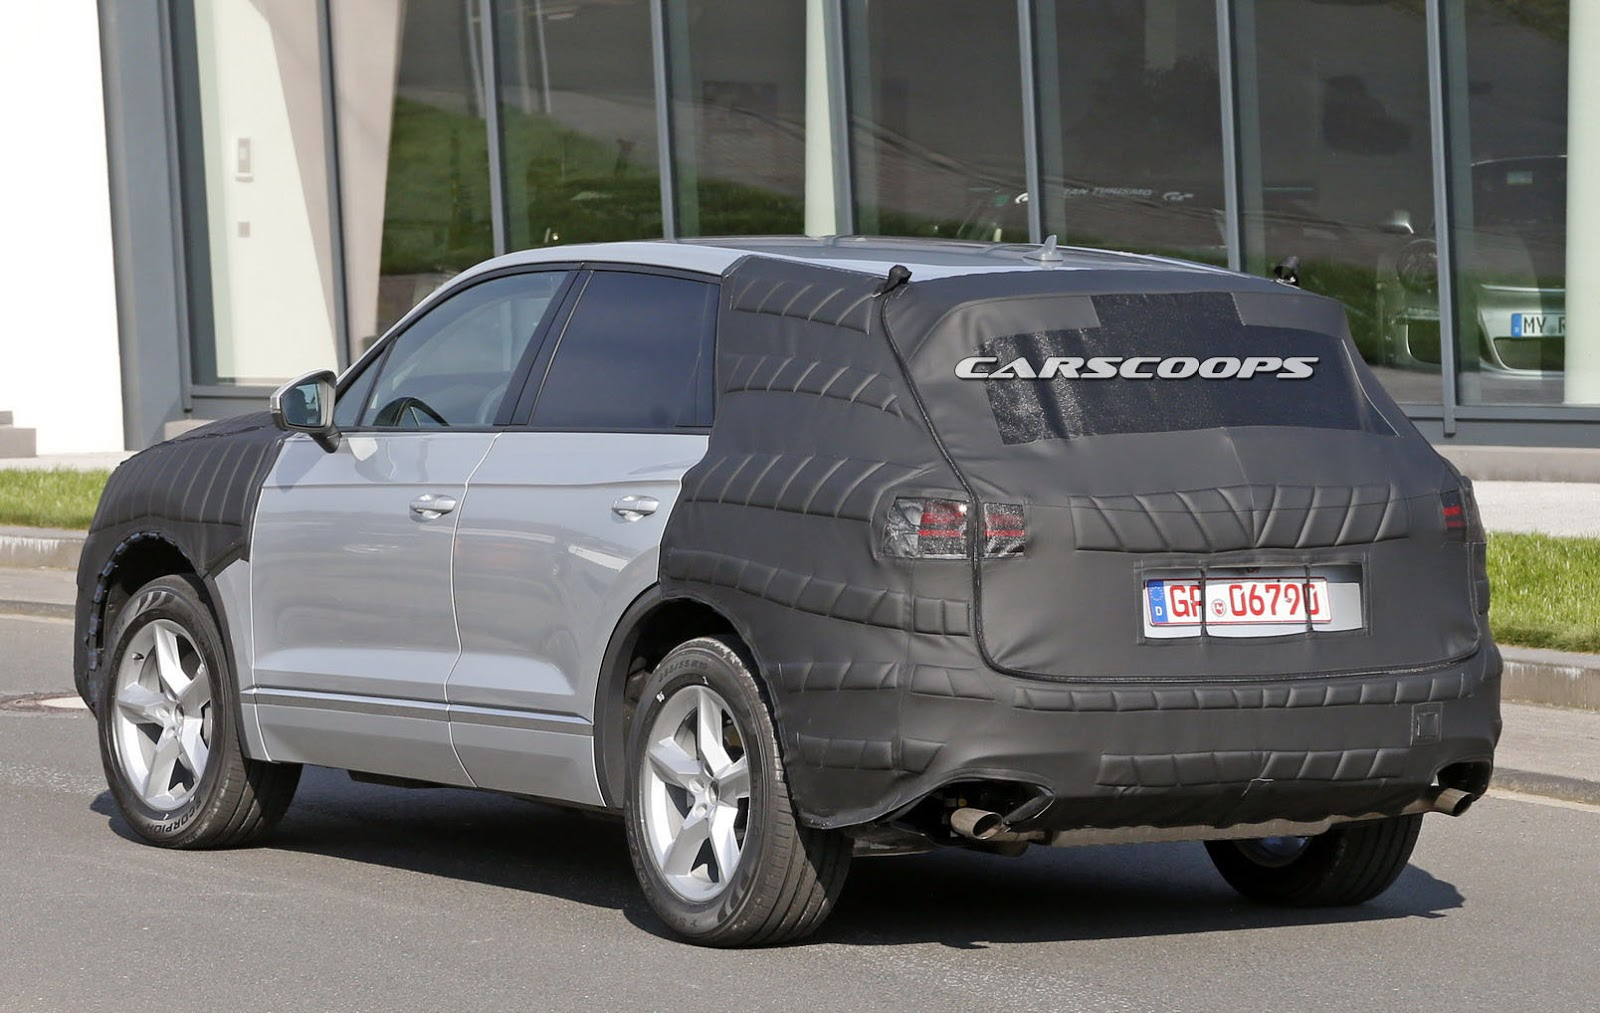 volkswagen touareg premiers spyshots du nouveau suv allemand. Black Bedroom Furniture Sets. Home Design Ideas